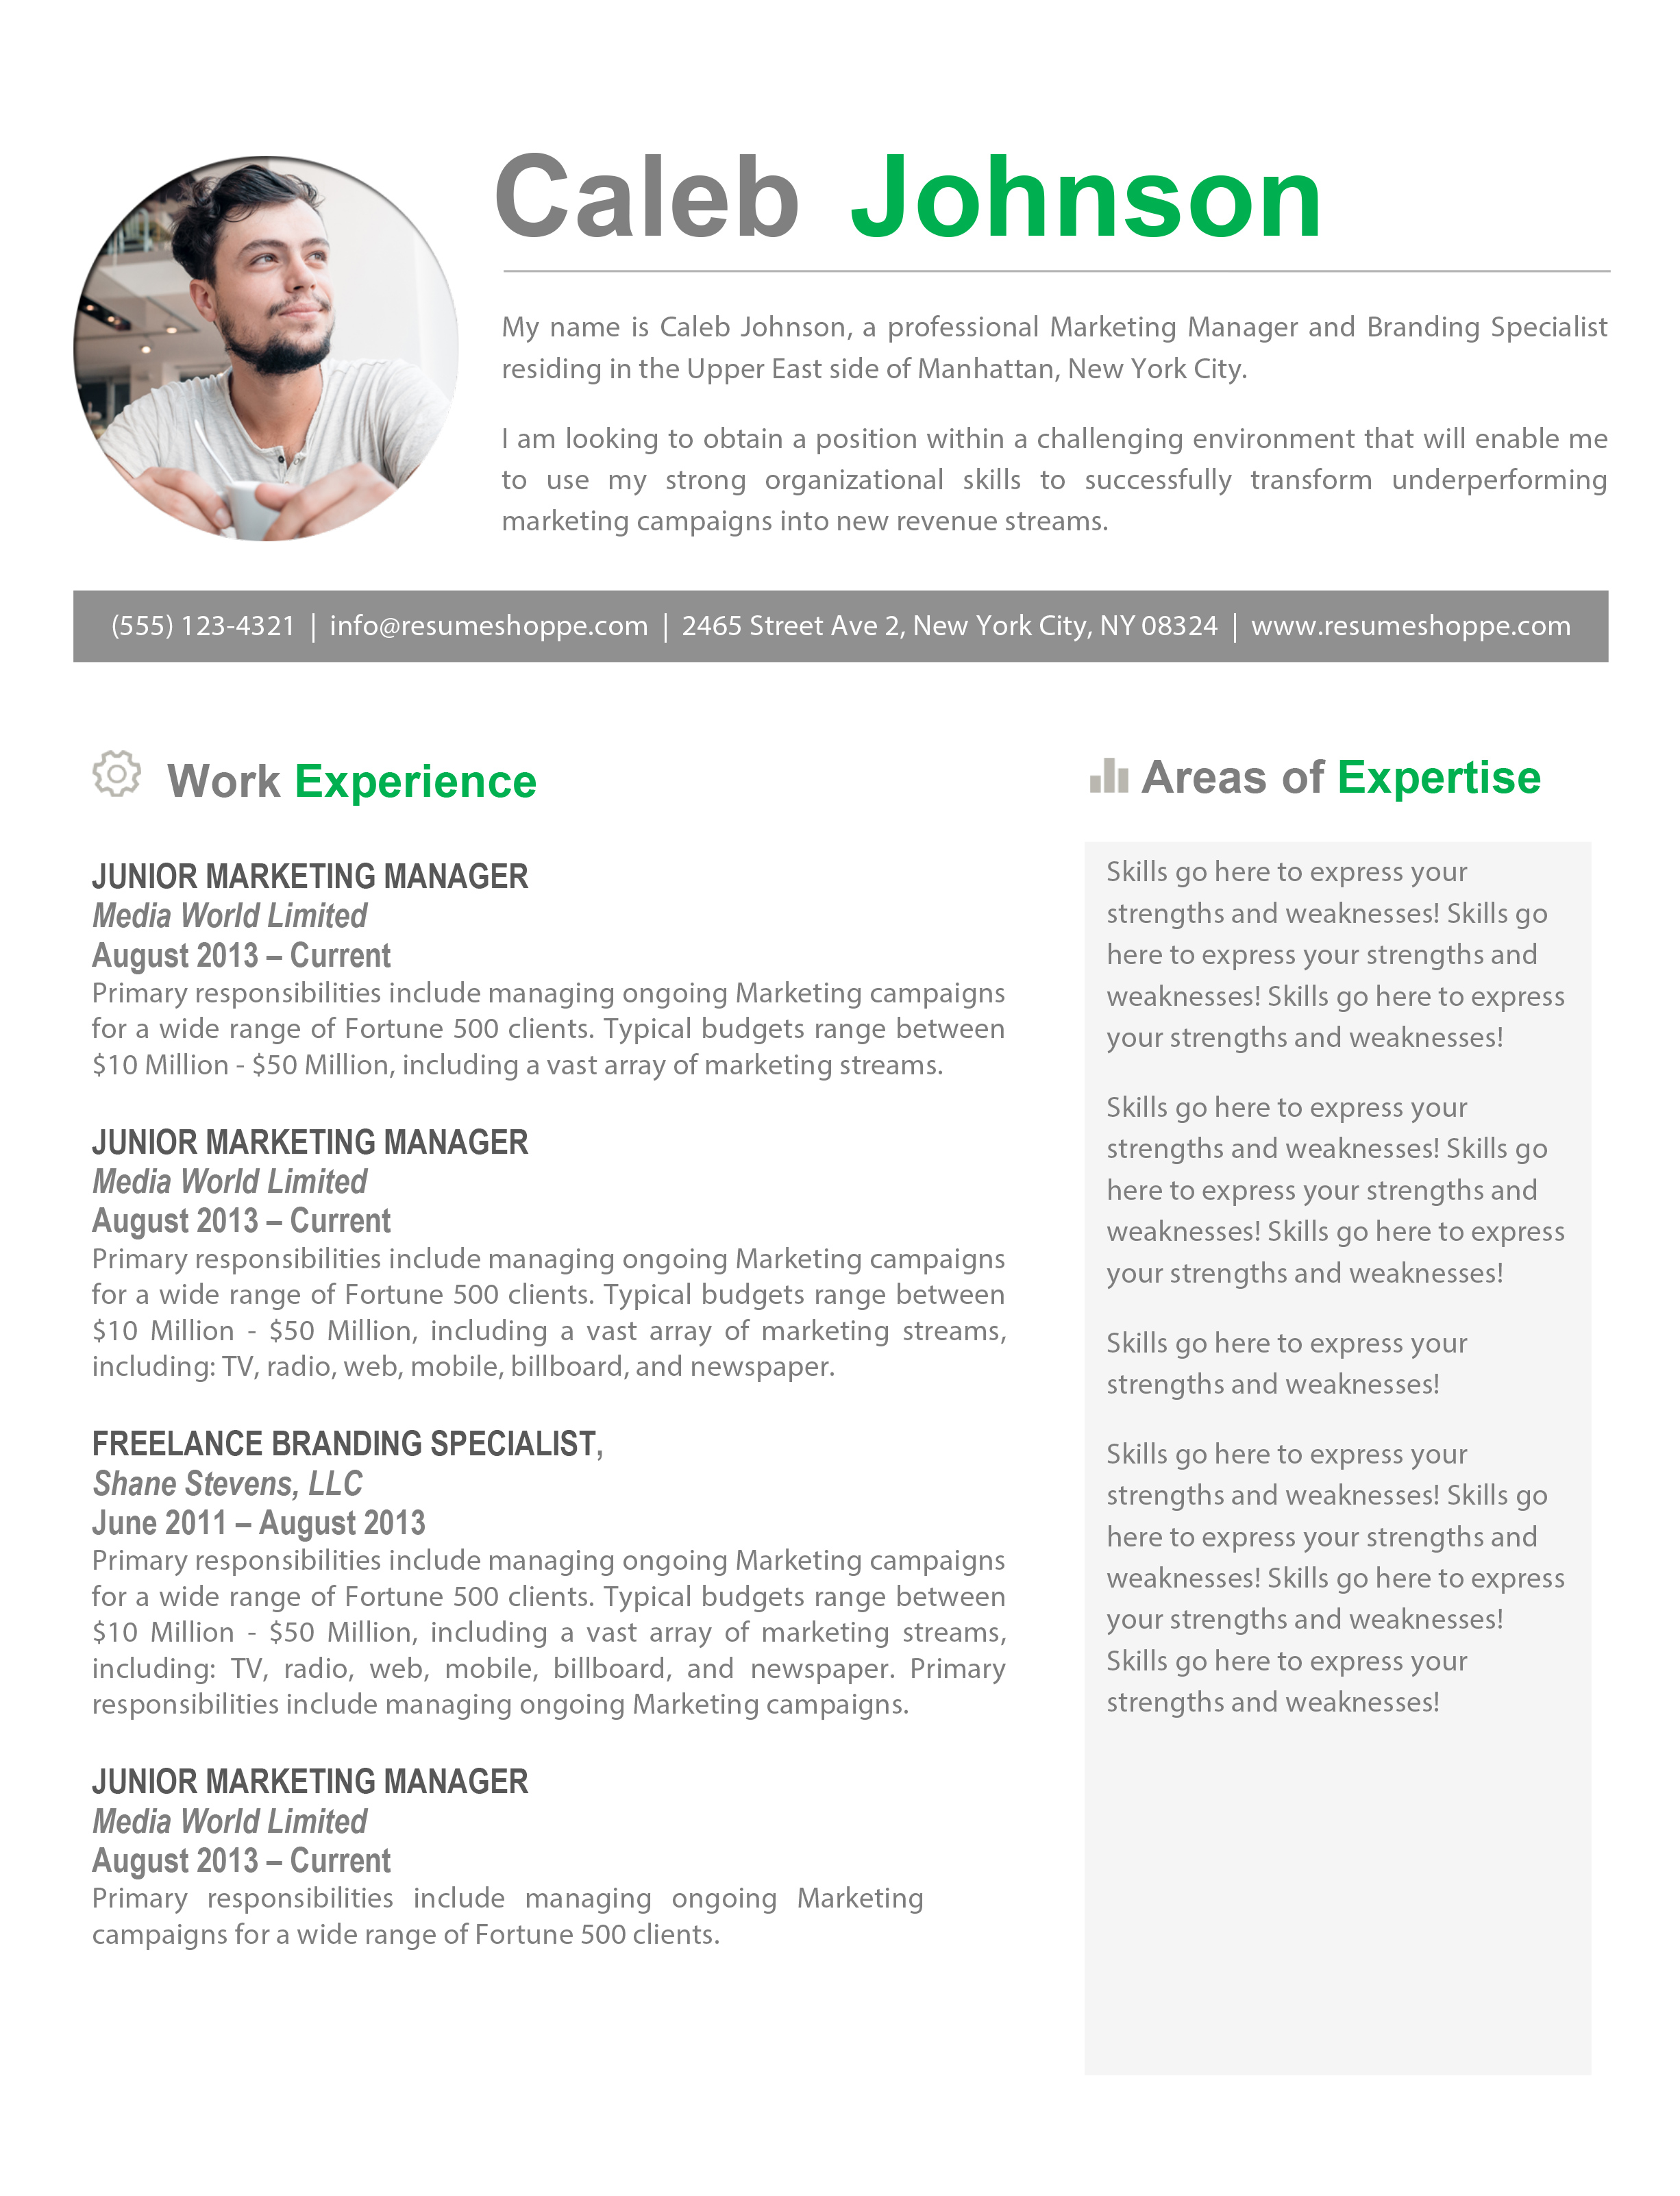 resume templates for mac also apple pages ready thecaleb resume 1 apple pages mac resume templates